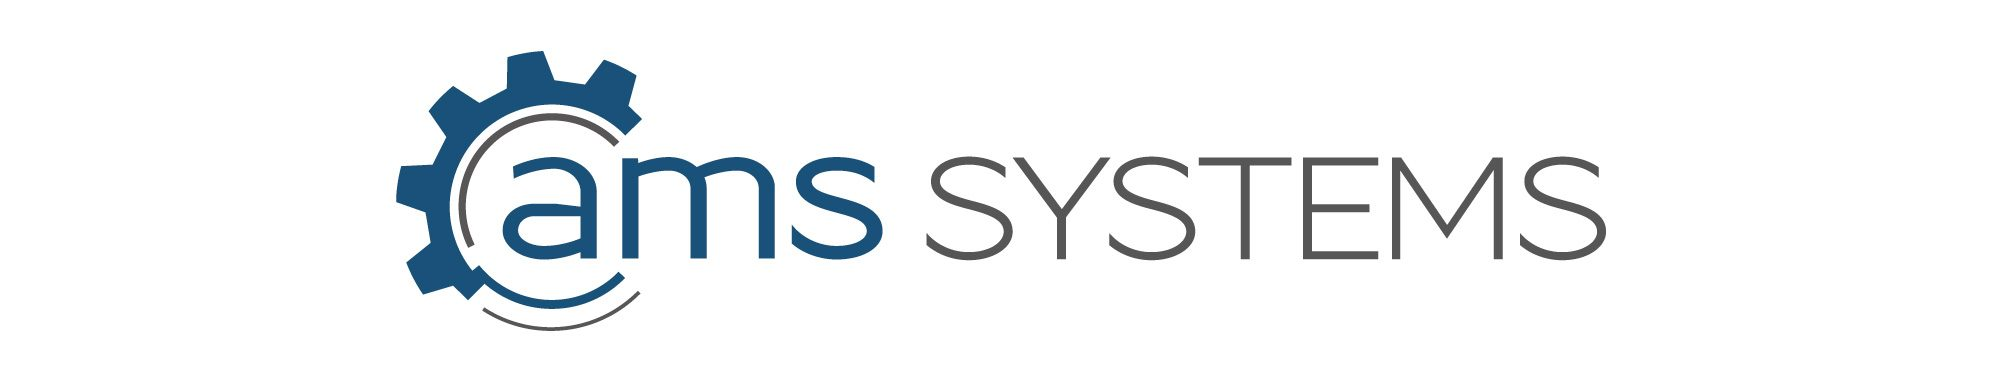 ams-systems